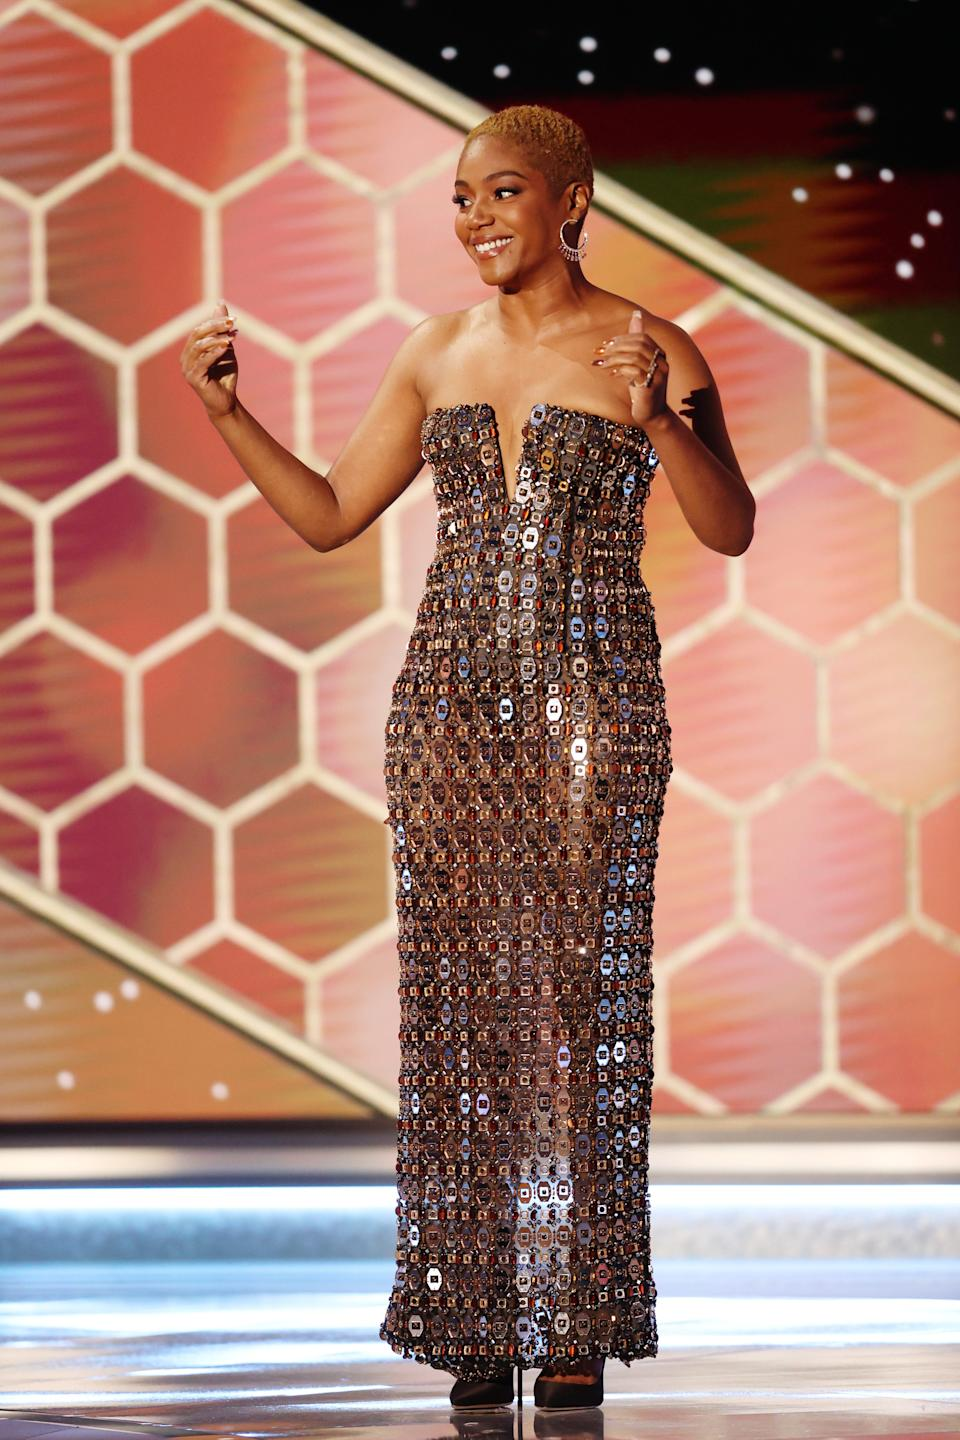 Tiffany Haddish was a presenter at the 78th Annual Golden Globe Awards at the Beverly Hilton Hotel on Sunday.